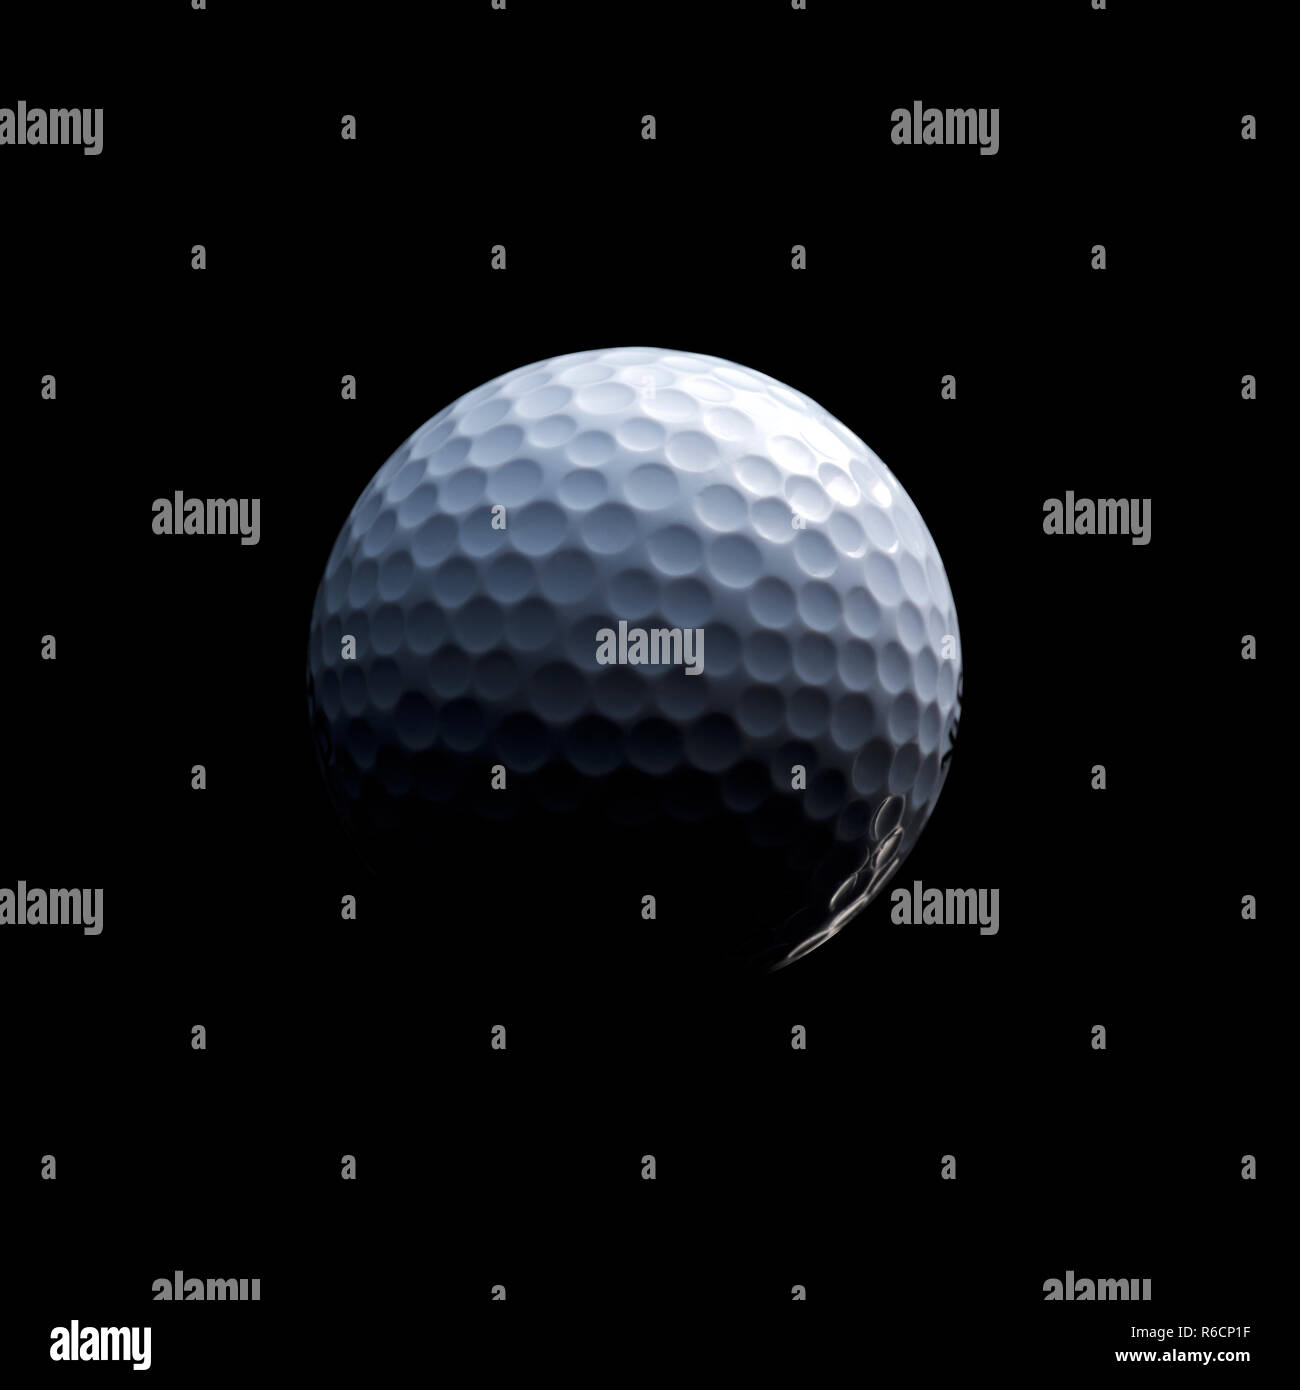 Detailed close of white dimpled golf ball in shadow, black background - Stock Image